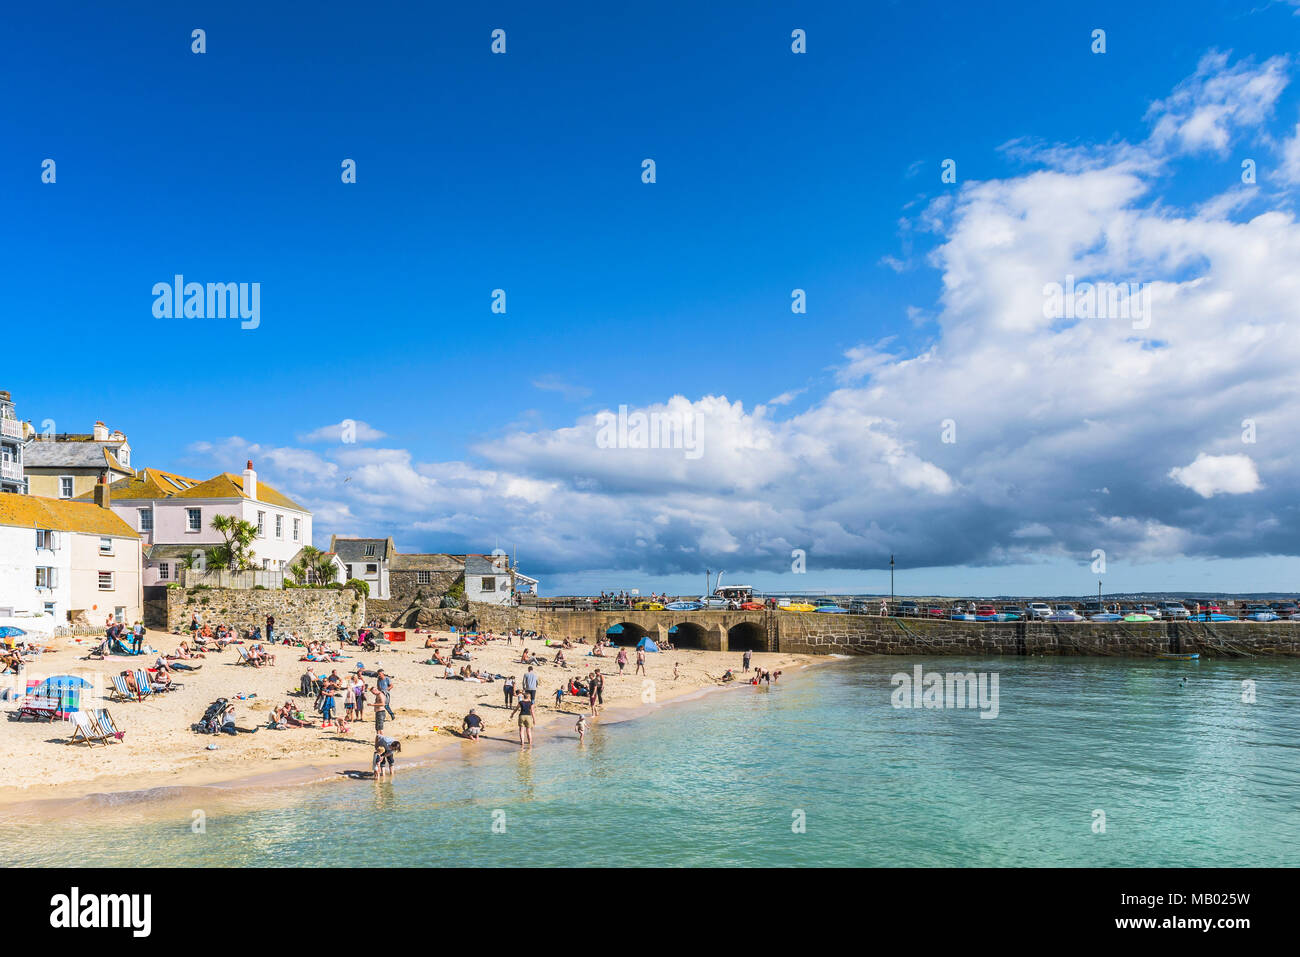 Holidaymakers relaxing on St Ives Harbour Beach in Cornwall. - Stock Image